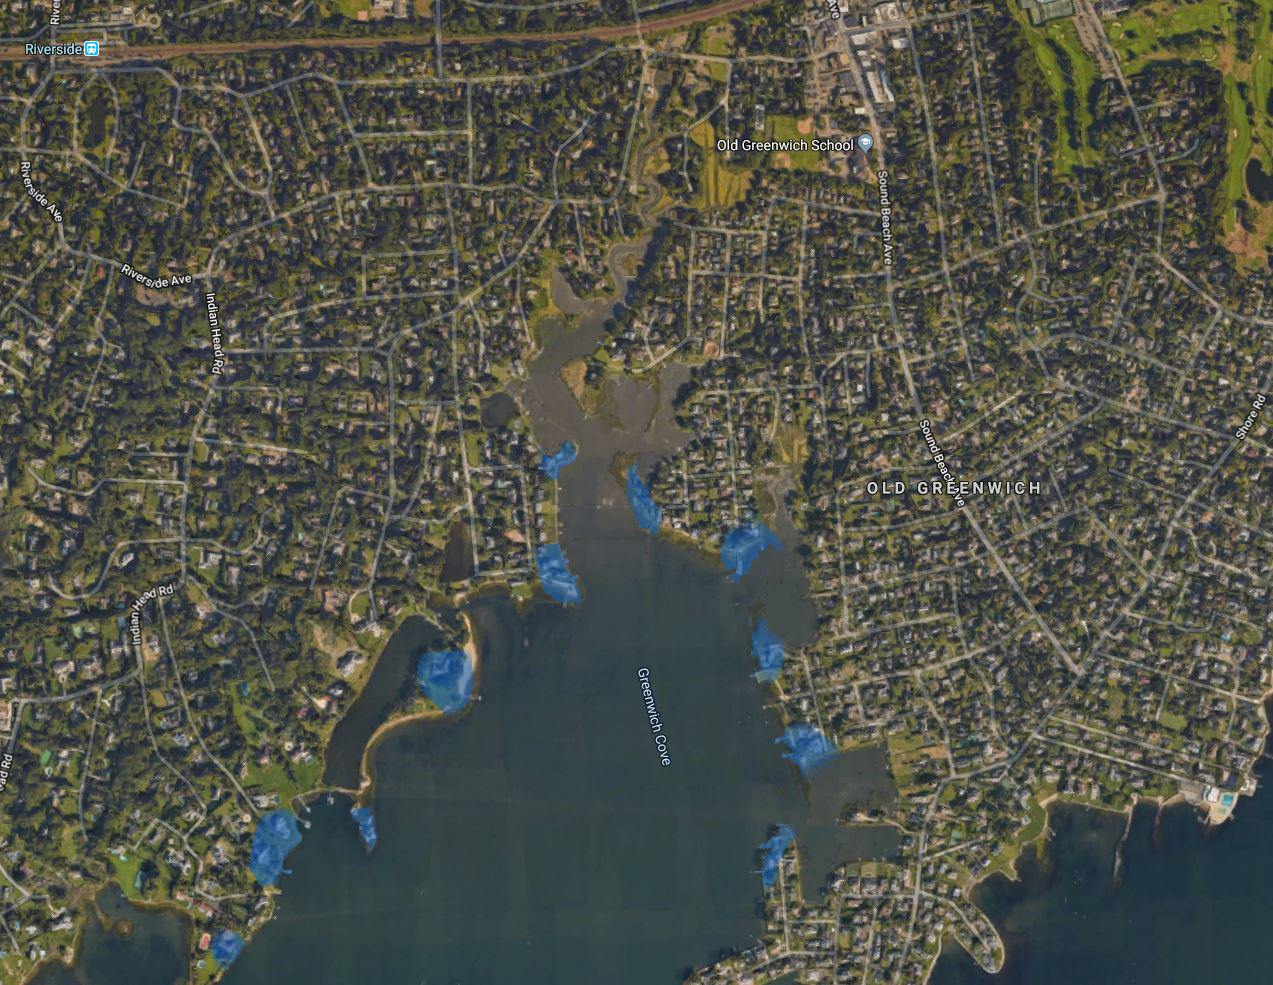 Focusing on oversized properties which feature expansive waterfront views, inventory to a limited selection.  (Image via Google Earth)